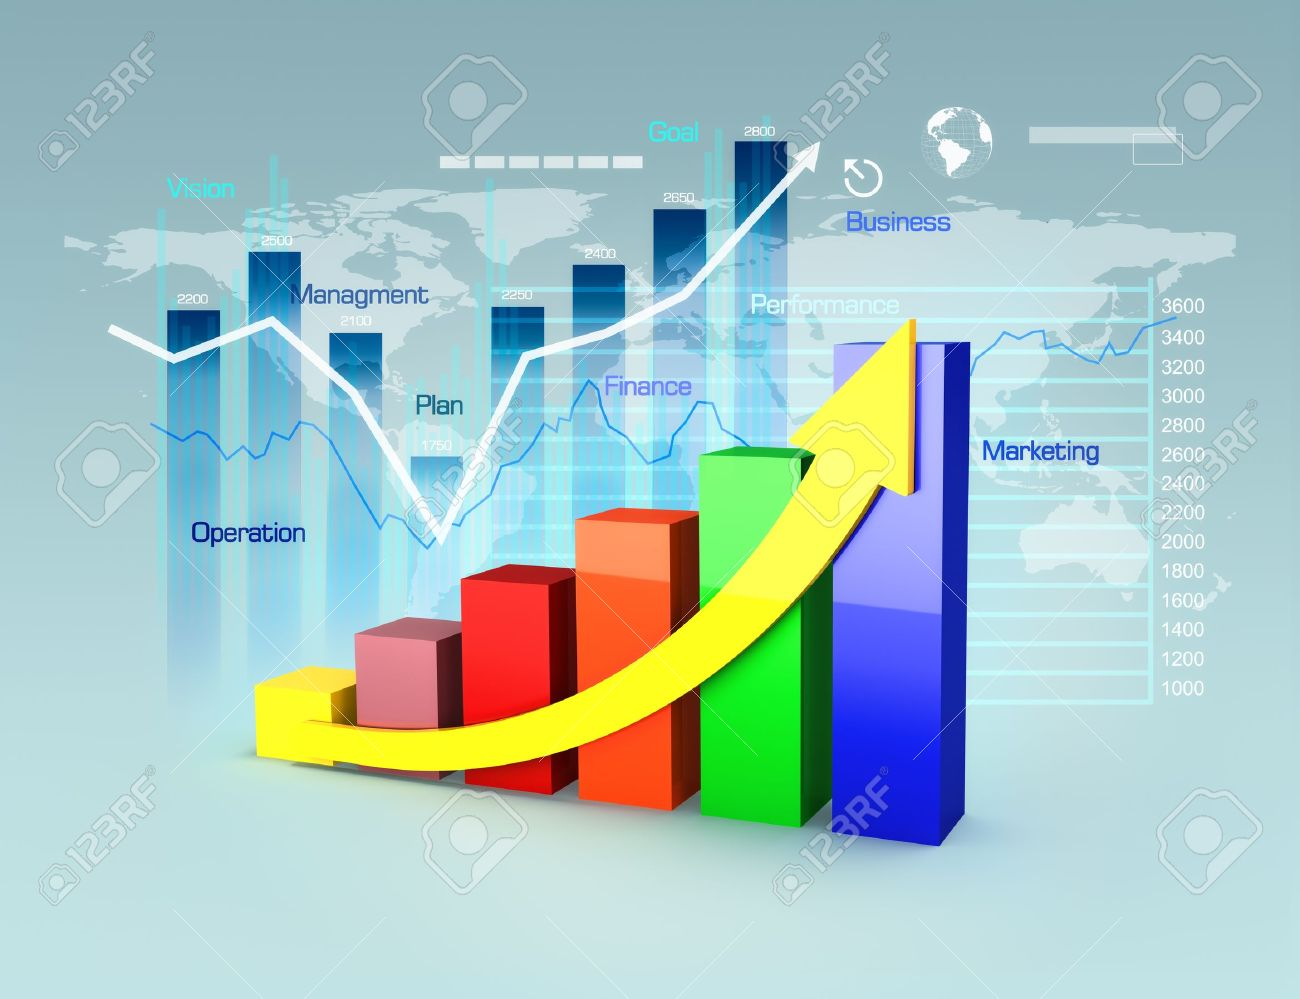 Business plan with graphs and charts, business growth and finance concept - 19296794